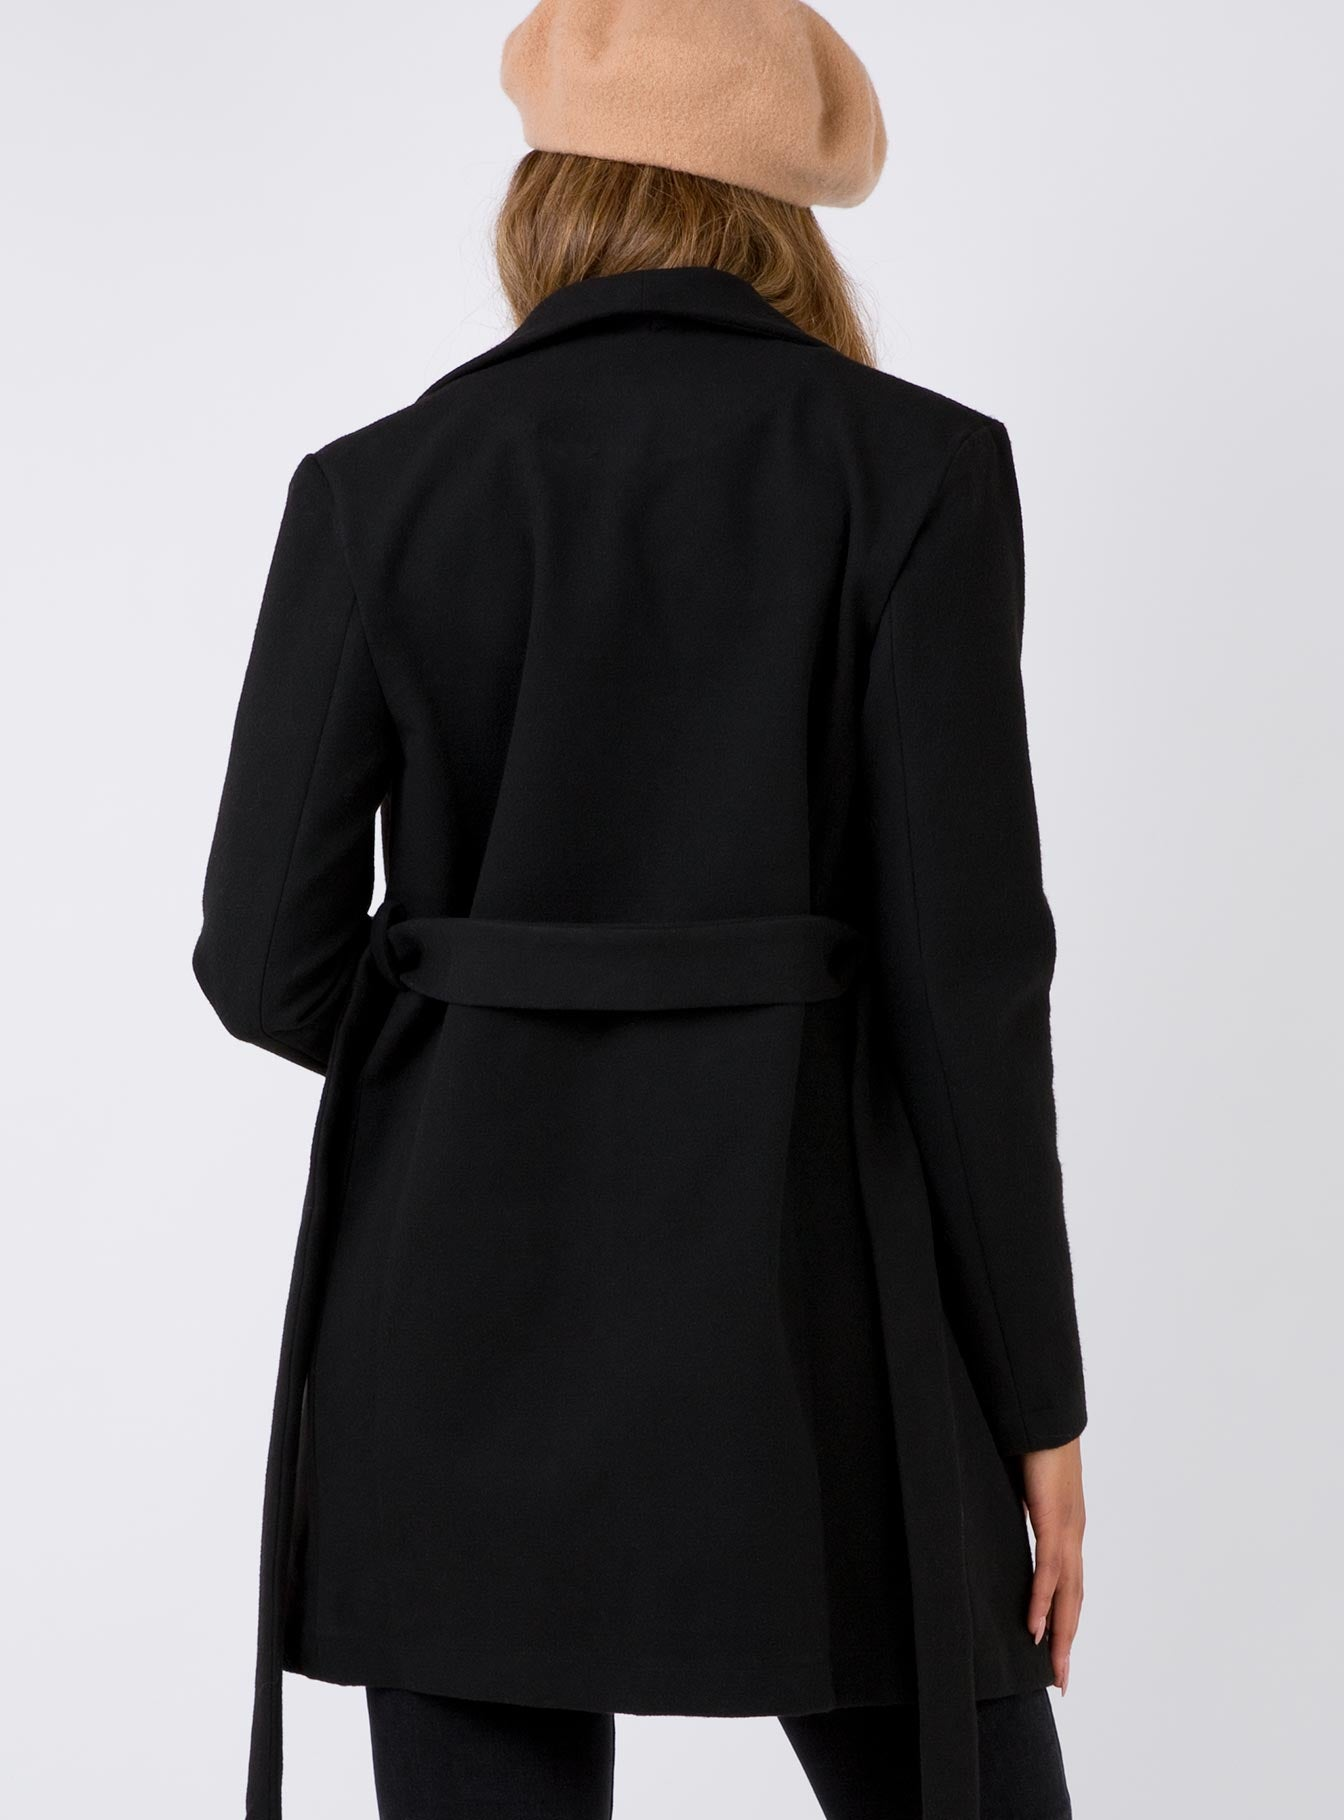 The Loras Coat Black